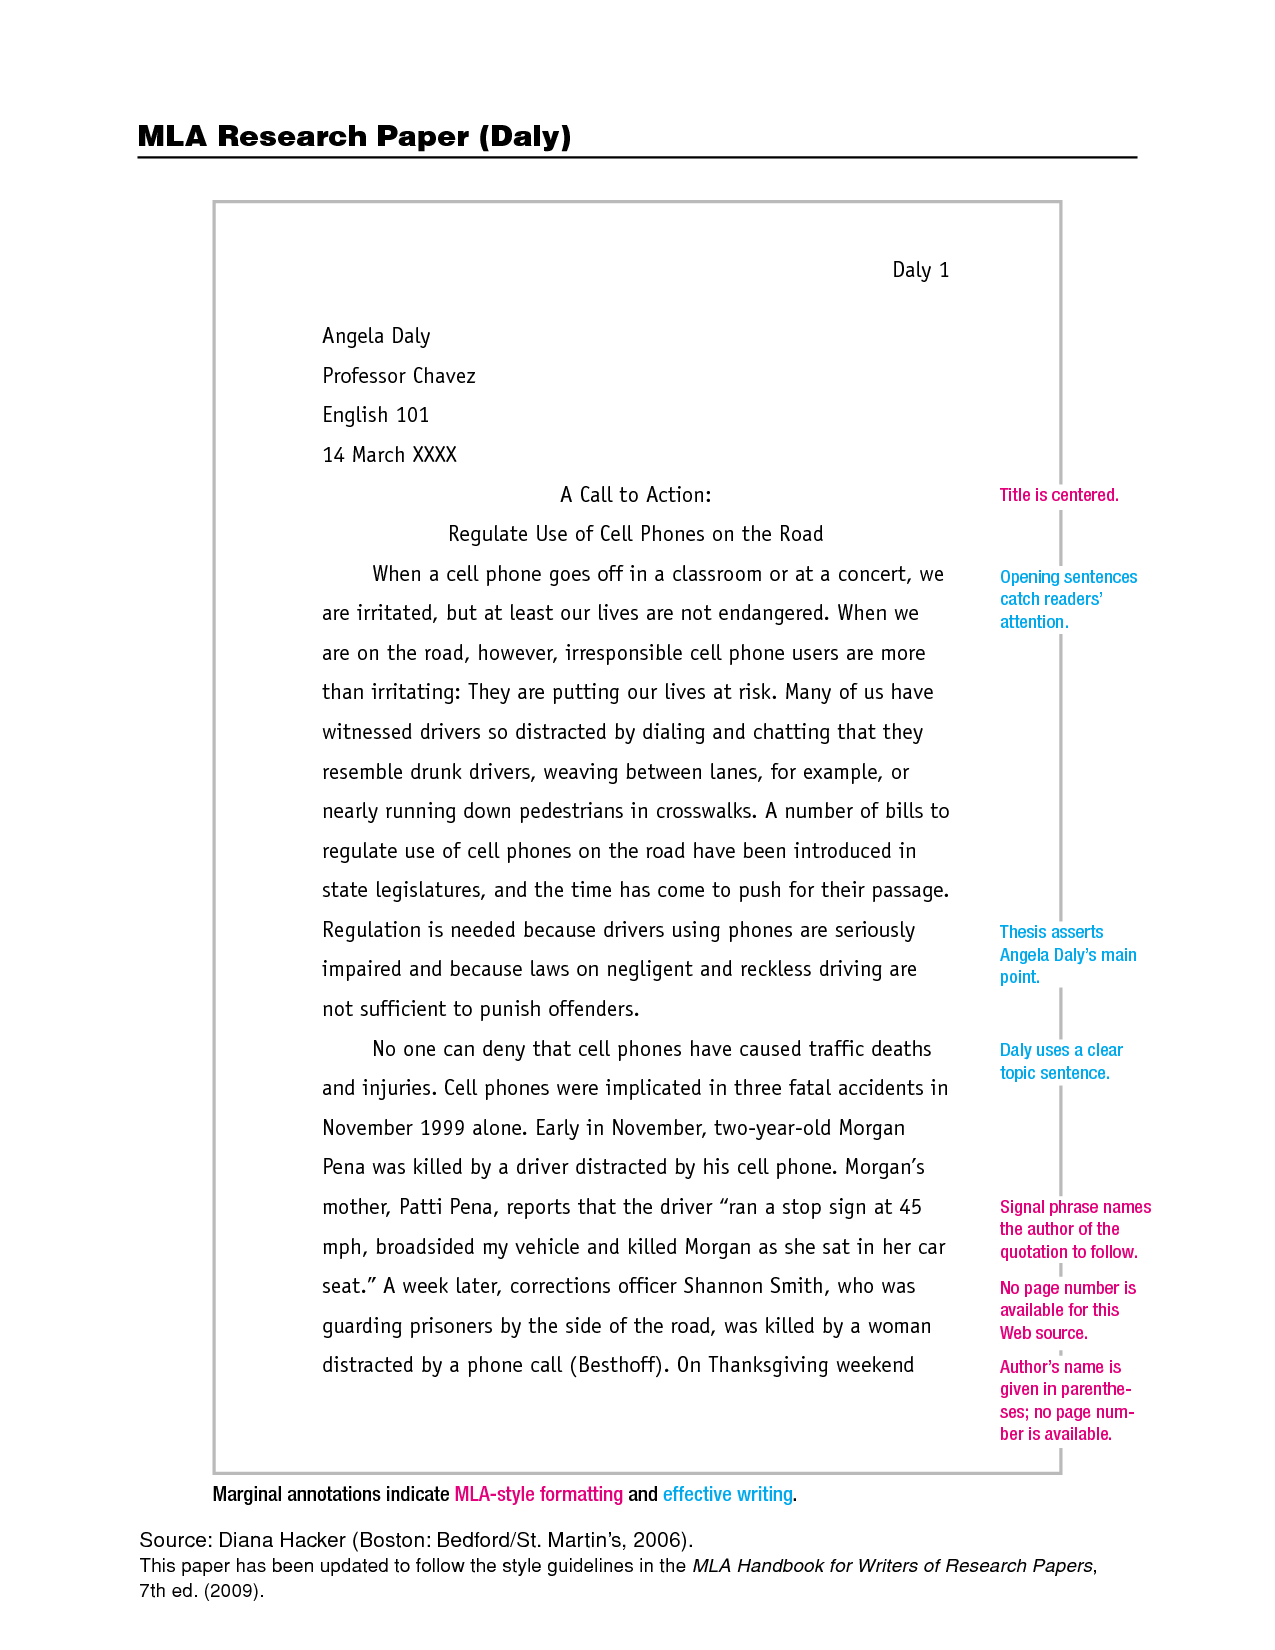 Citing an essay in a book essay papers images about what your paper essay papers images about what your paper should look like on images about what your paper ccuart Gallery